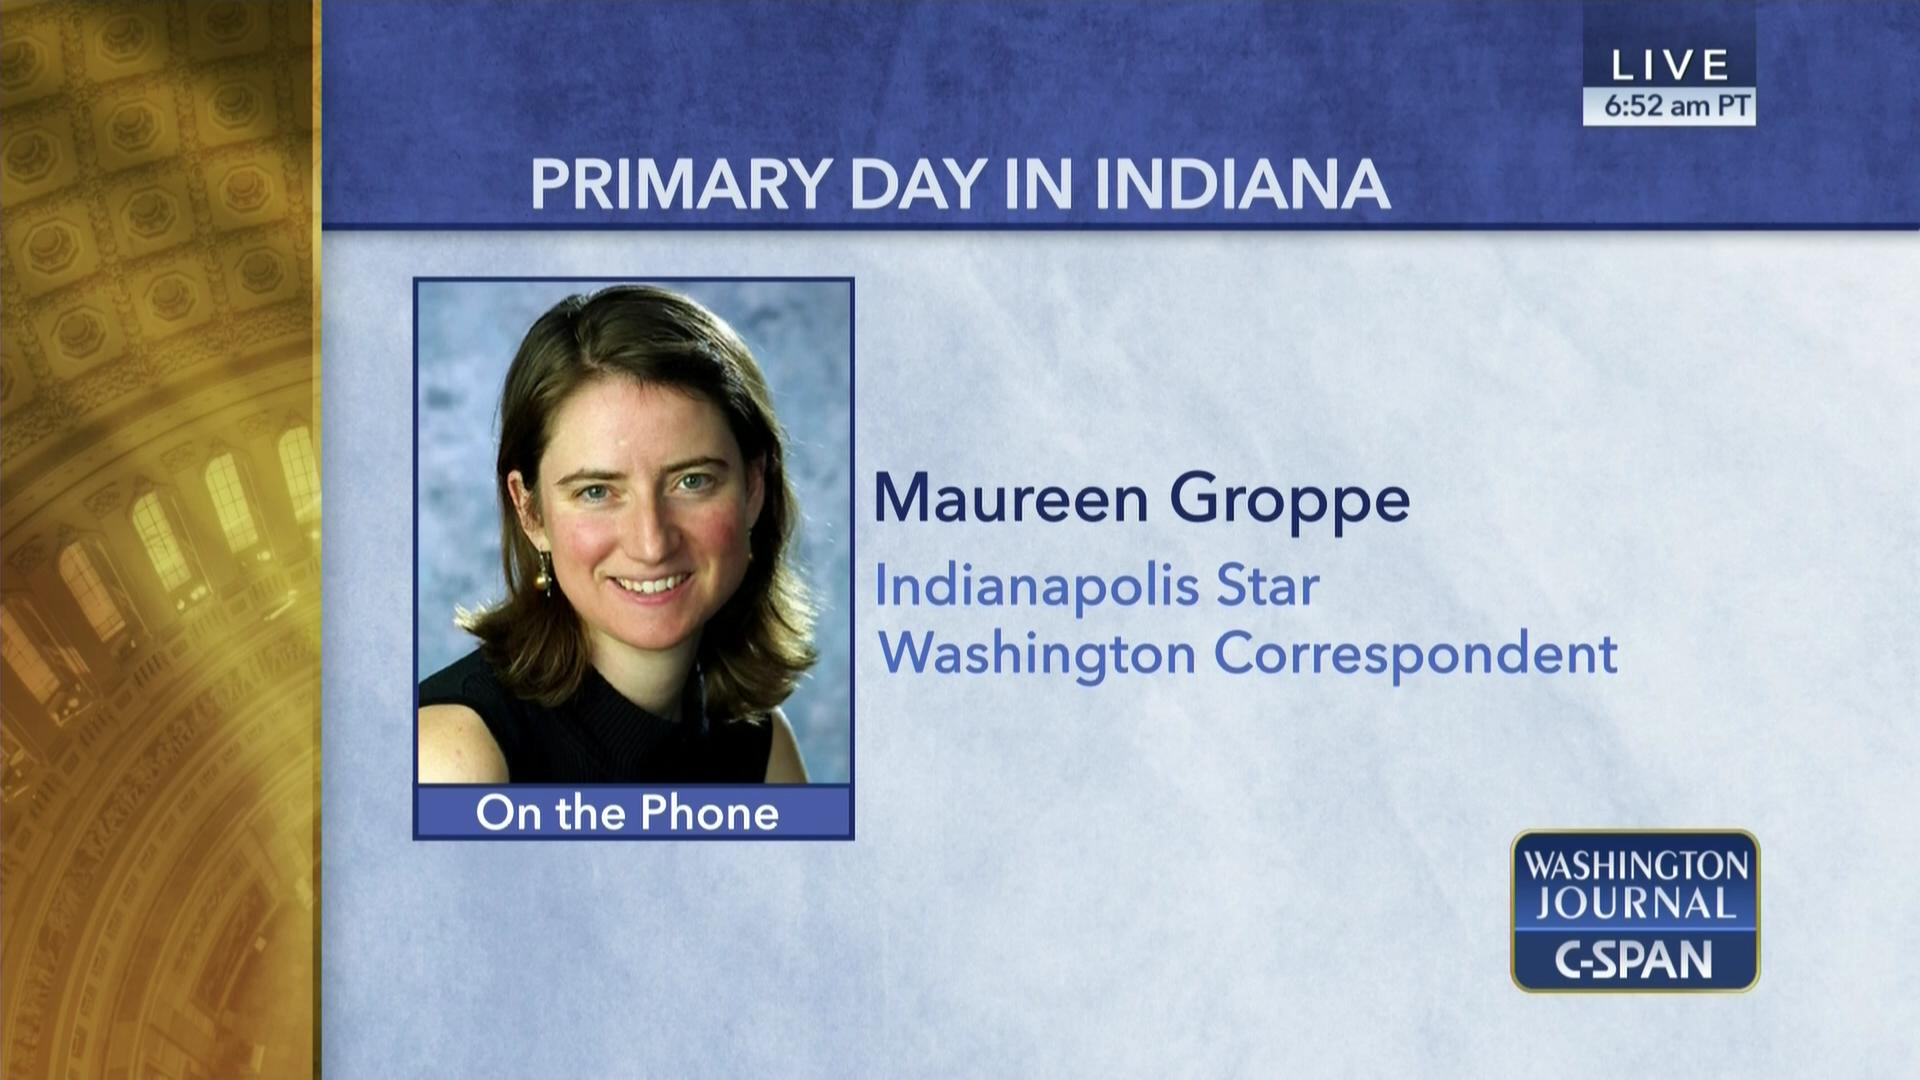 Indiana Maureen C-span Primary org Day In Groppe On